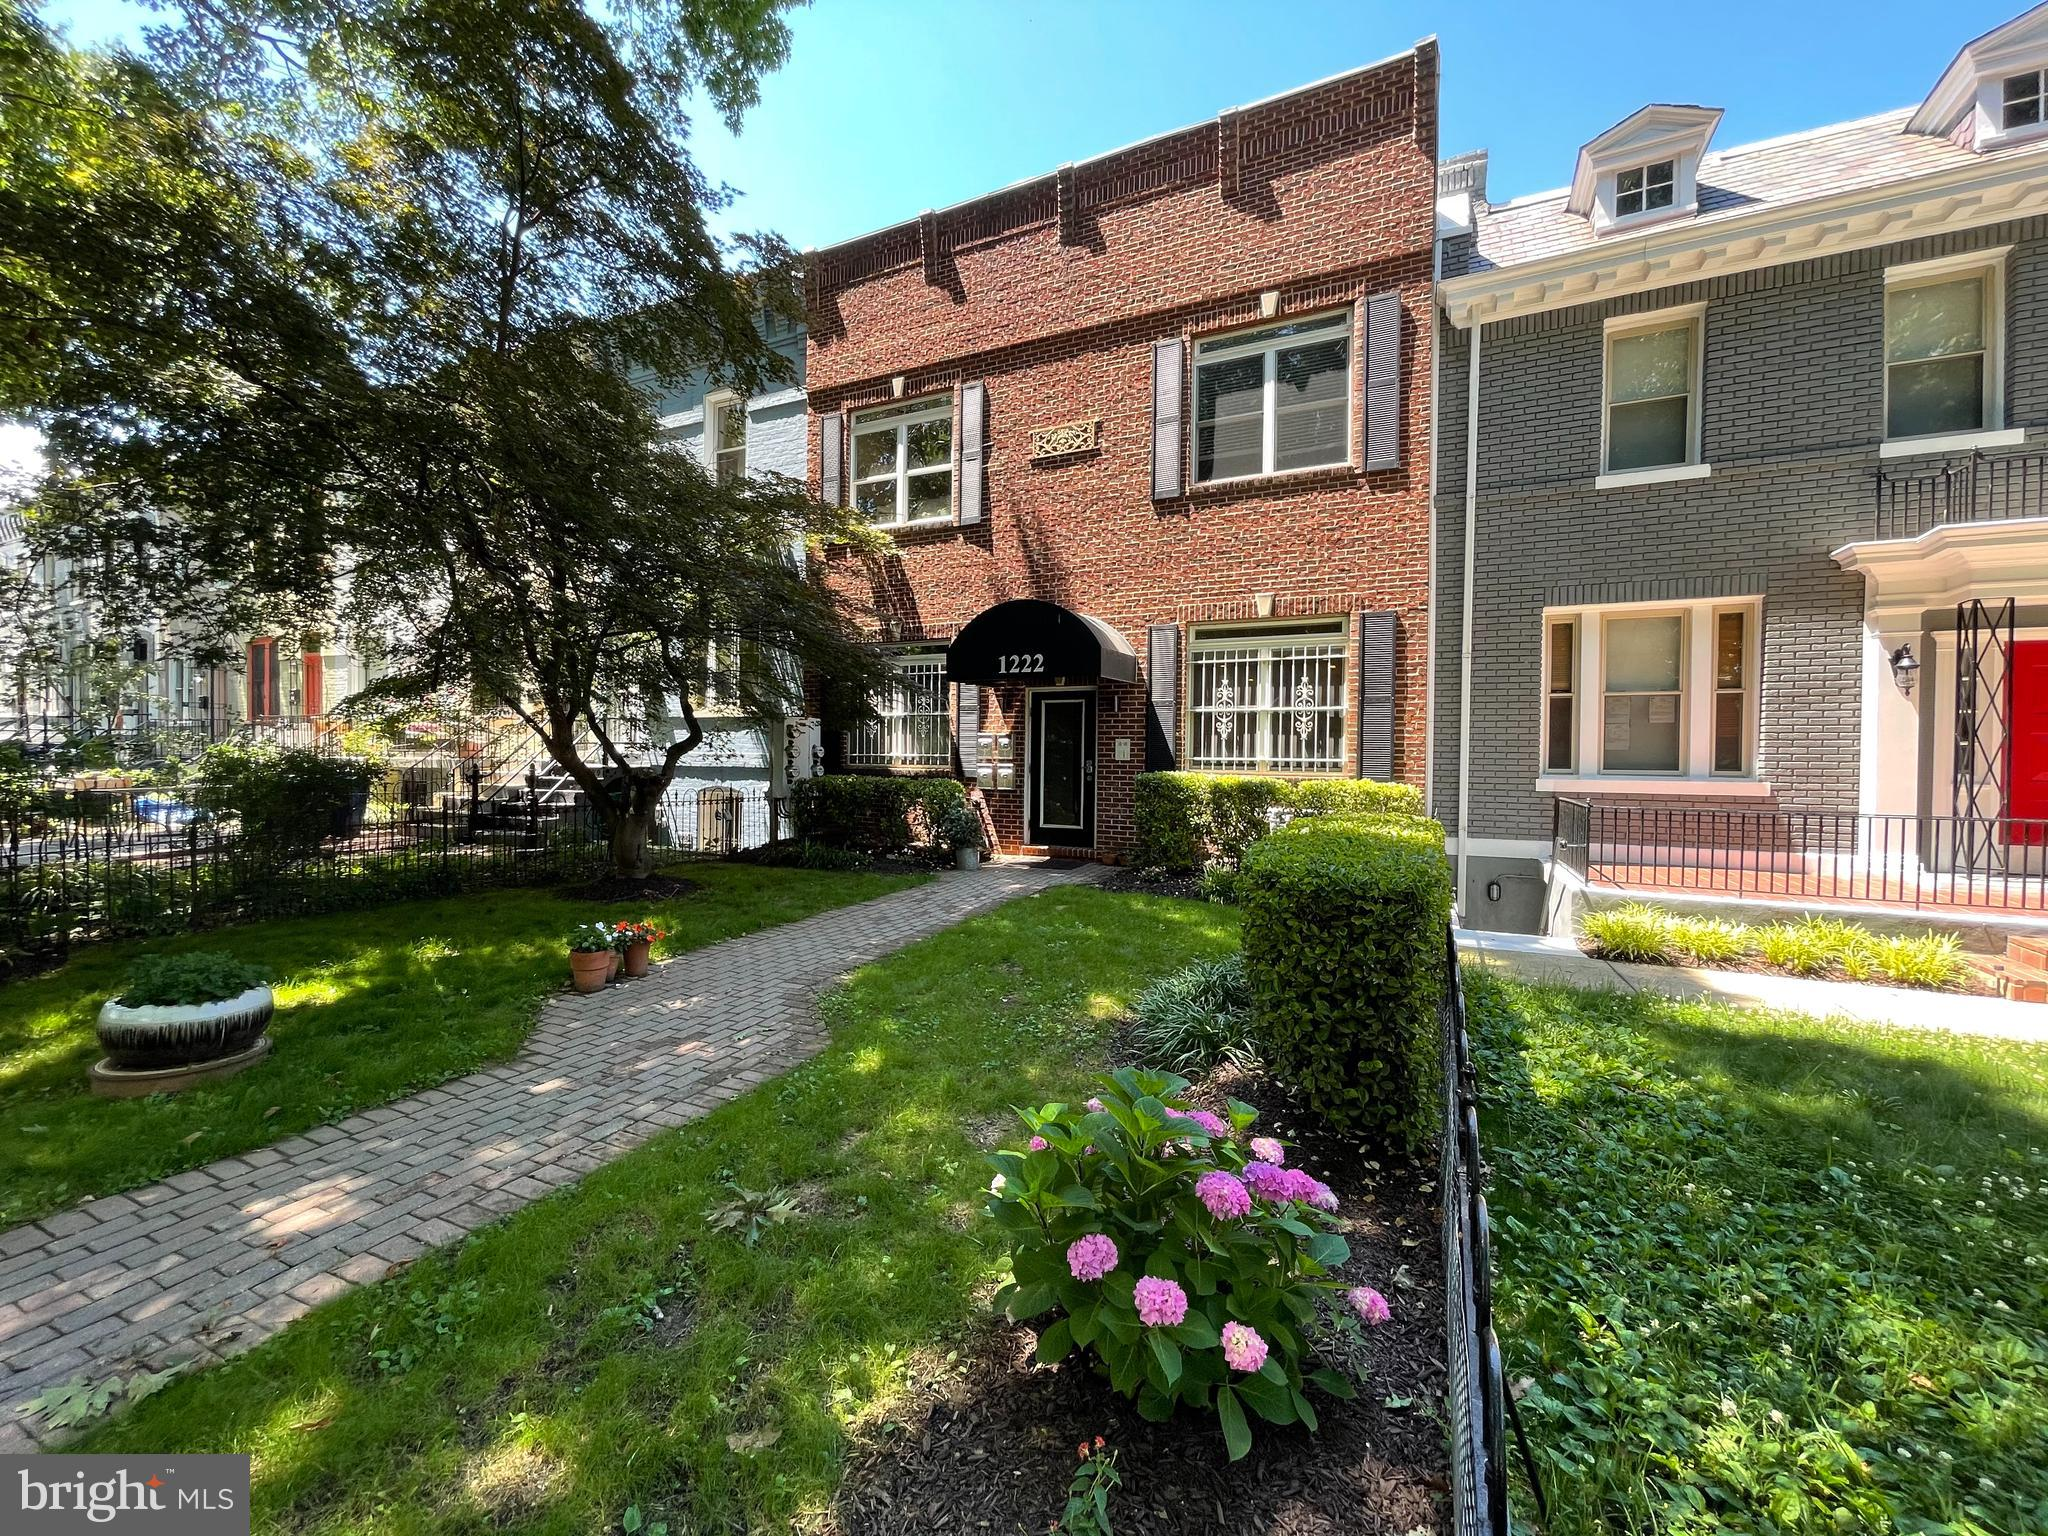 Gorgeous, freshly renovated 2BD/2BA Cap Hill condo with sky-high ceilings, brand new hardwood floors